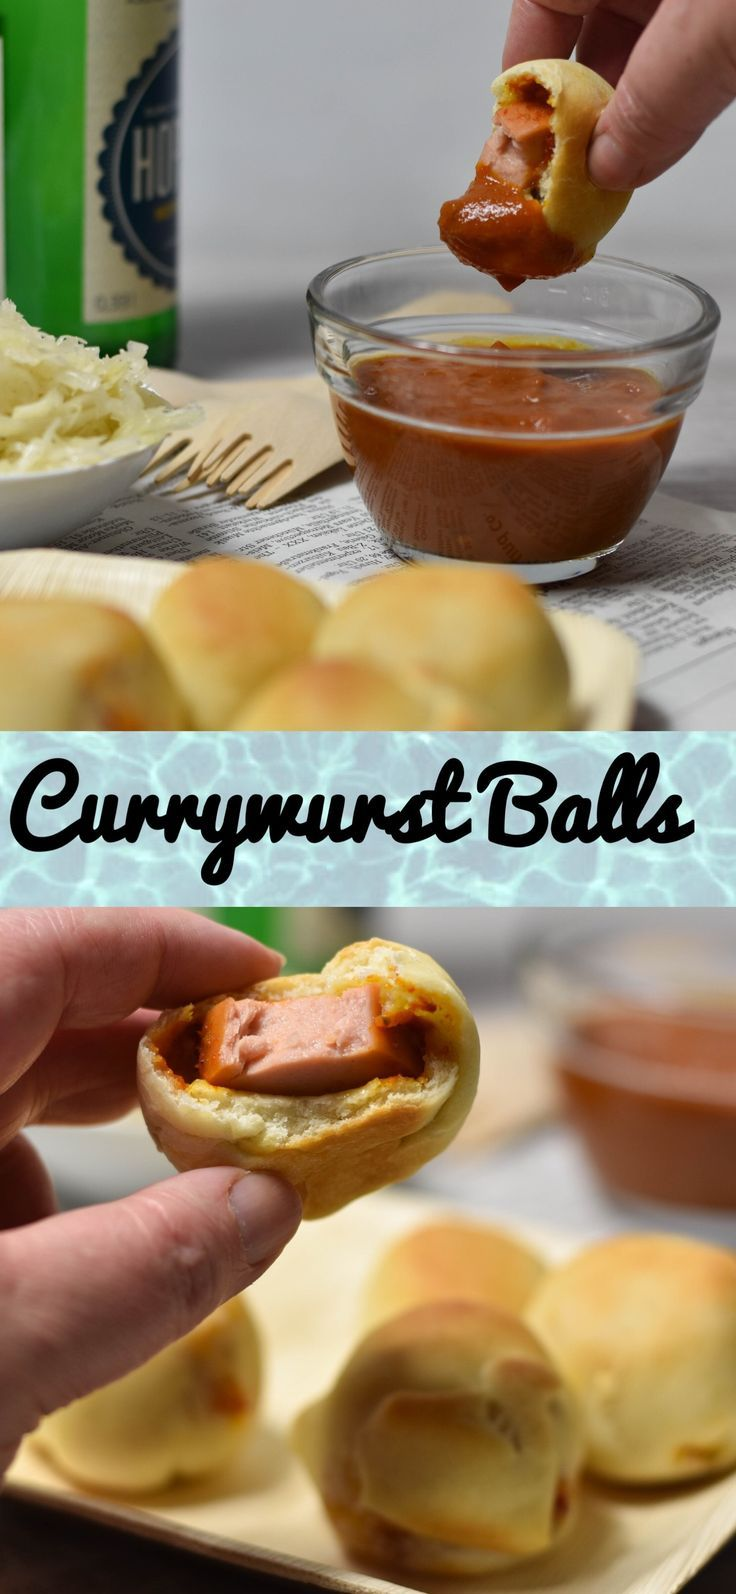 Currywurst Balls - die ultimative Snack Idee